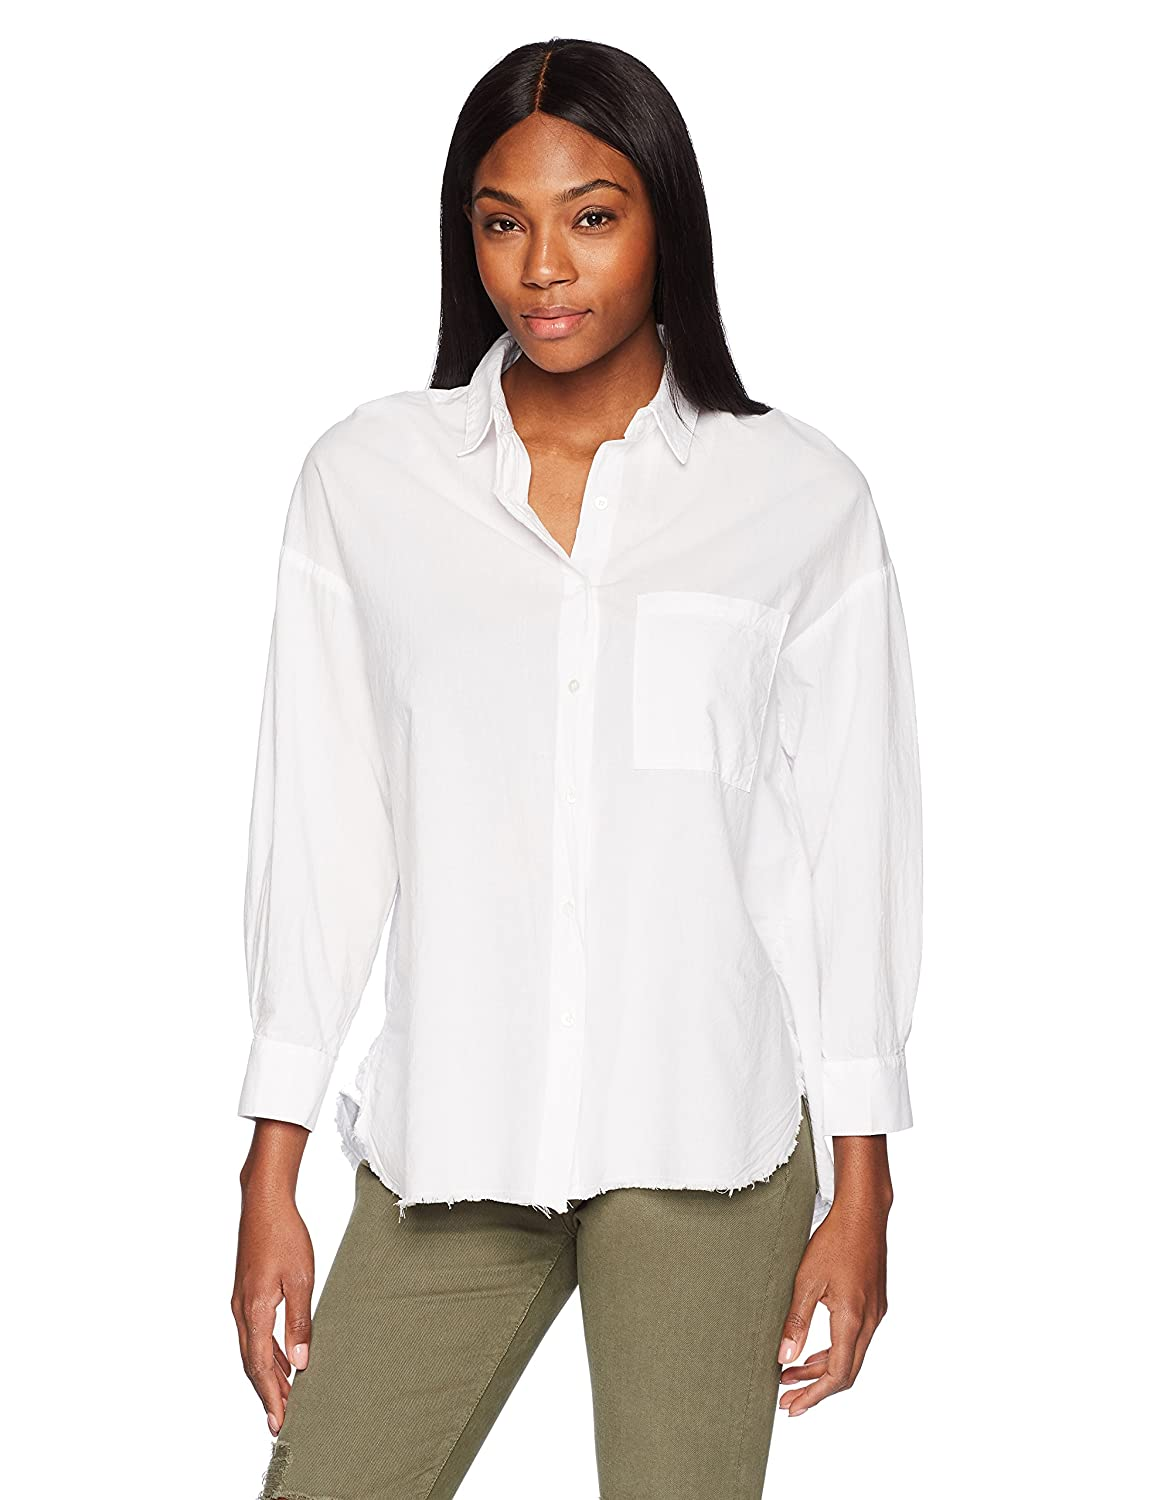 c49abe99cb12b Oversized Button Down Shirt Amazon – EDGE Engineering and Consulting ...